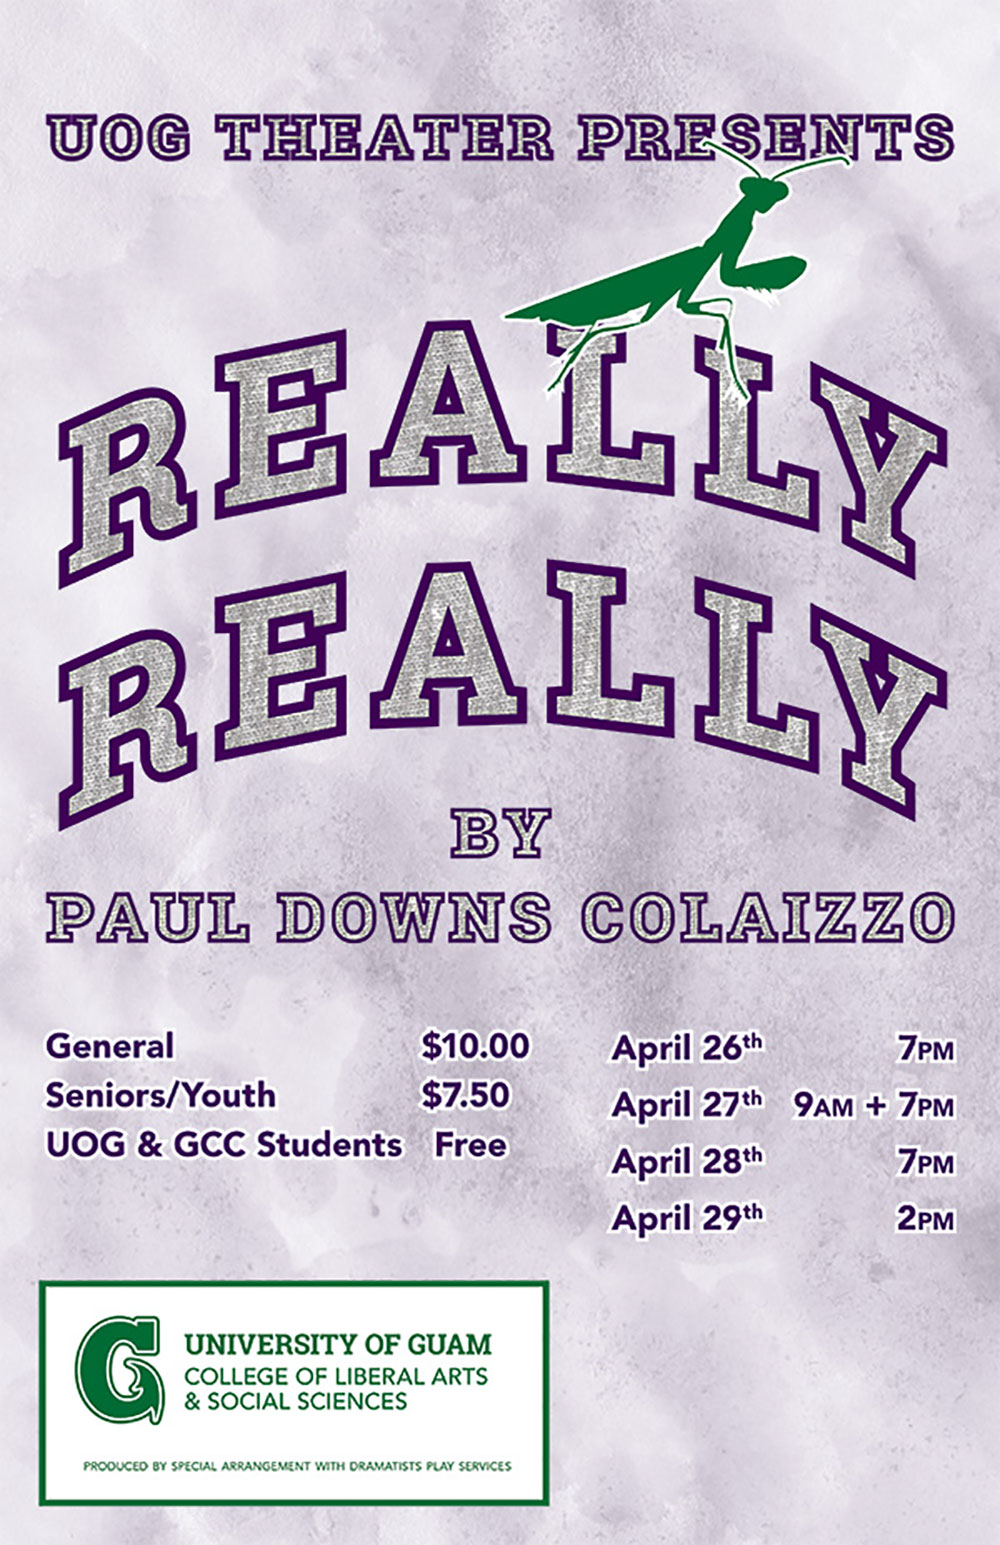 UOG Theatre Presents Colaizzo's Really Really